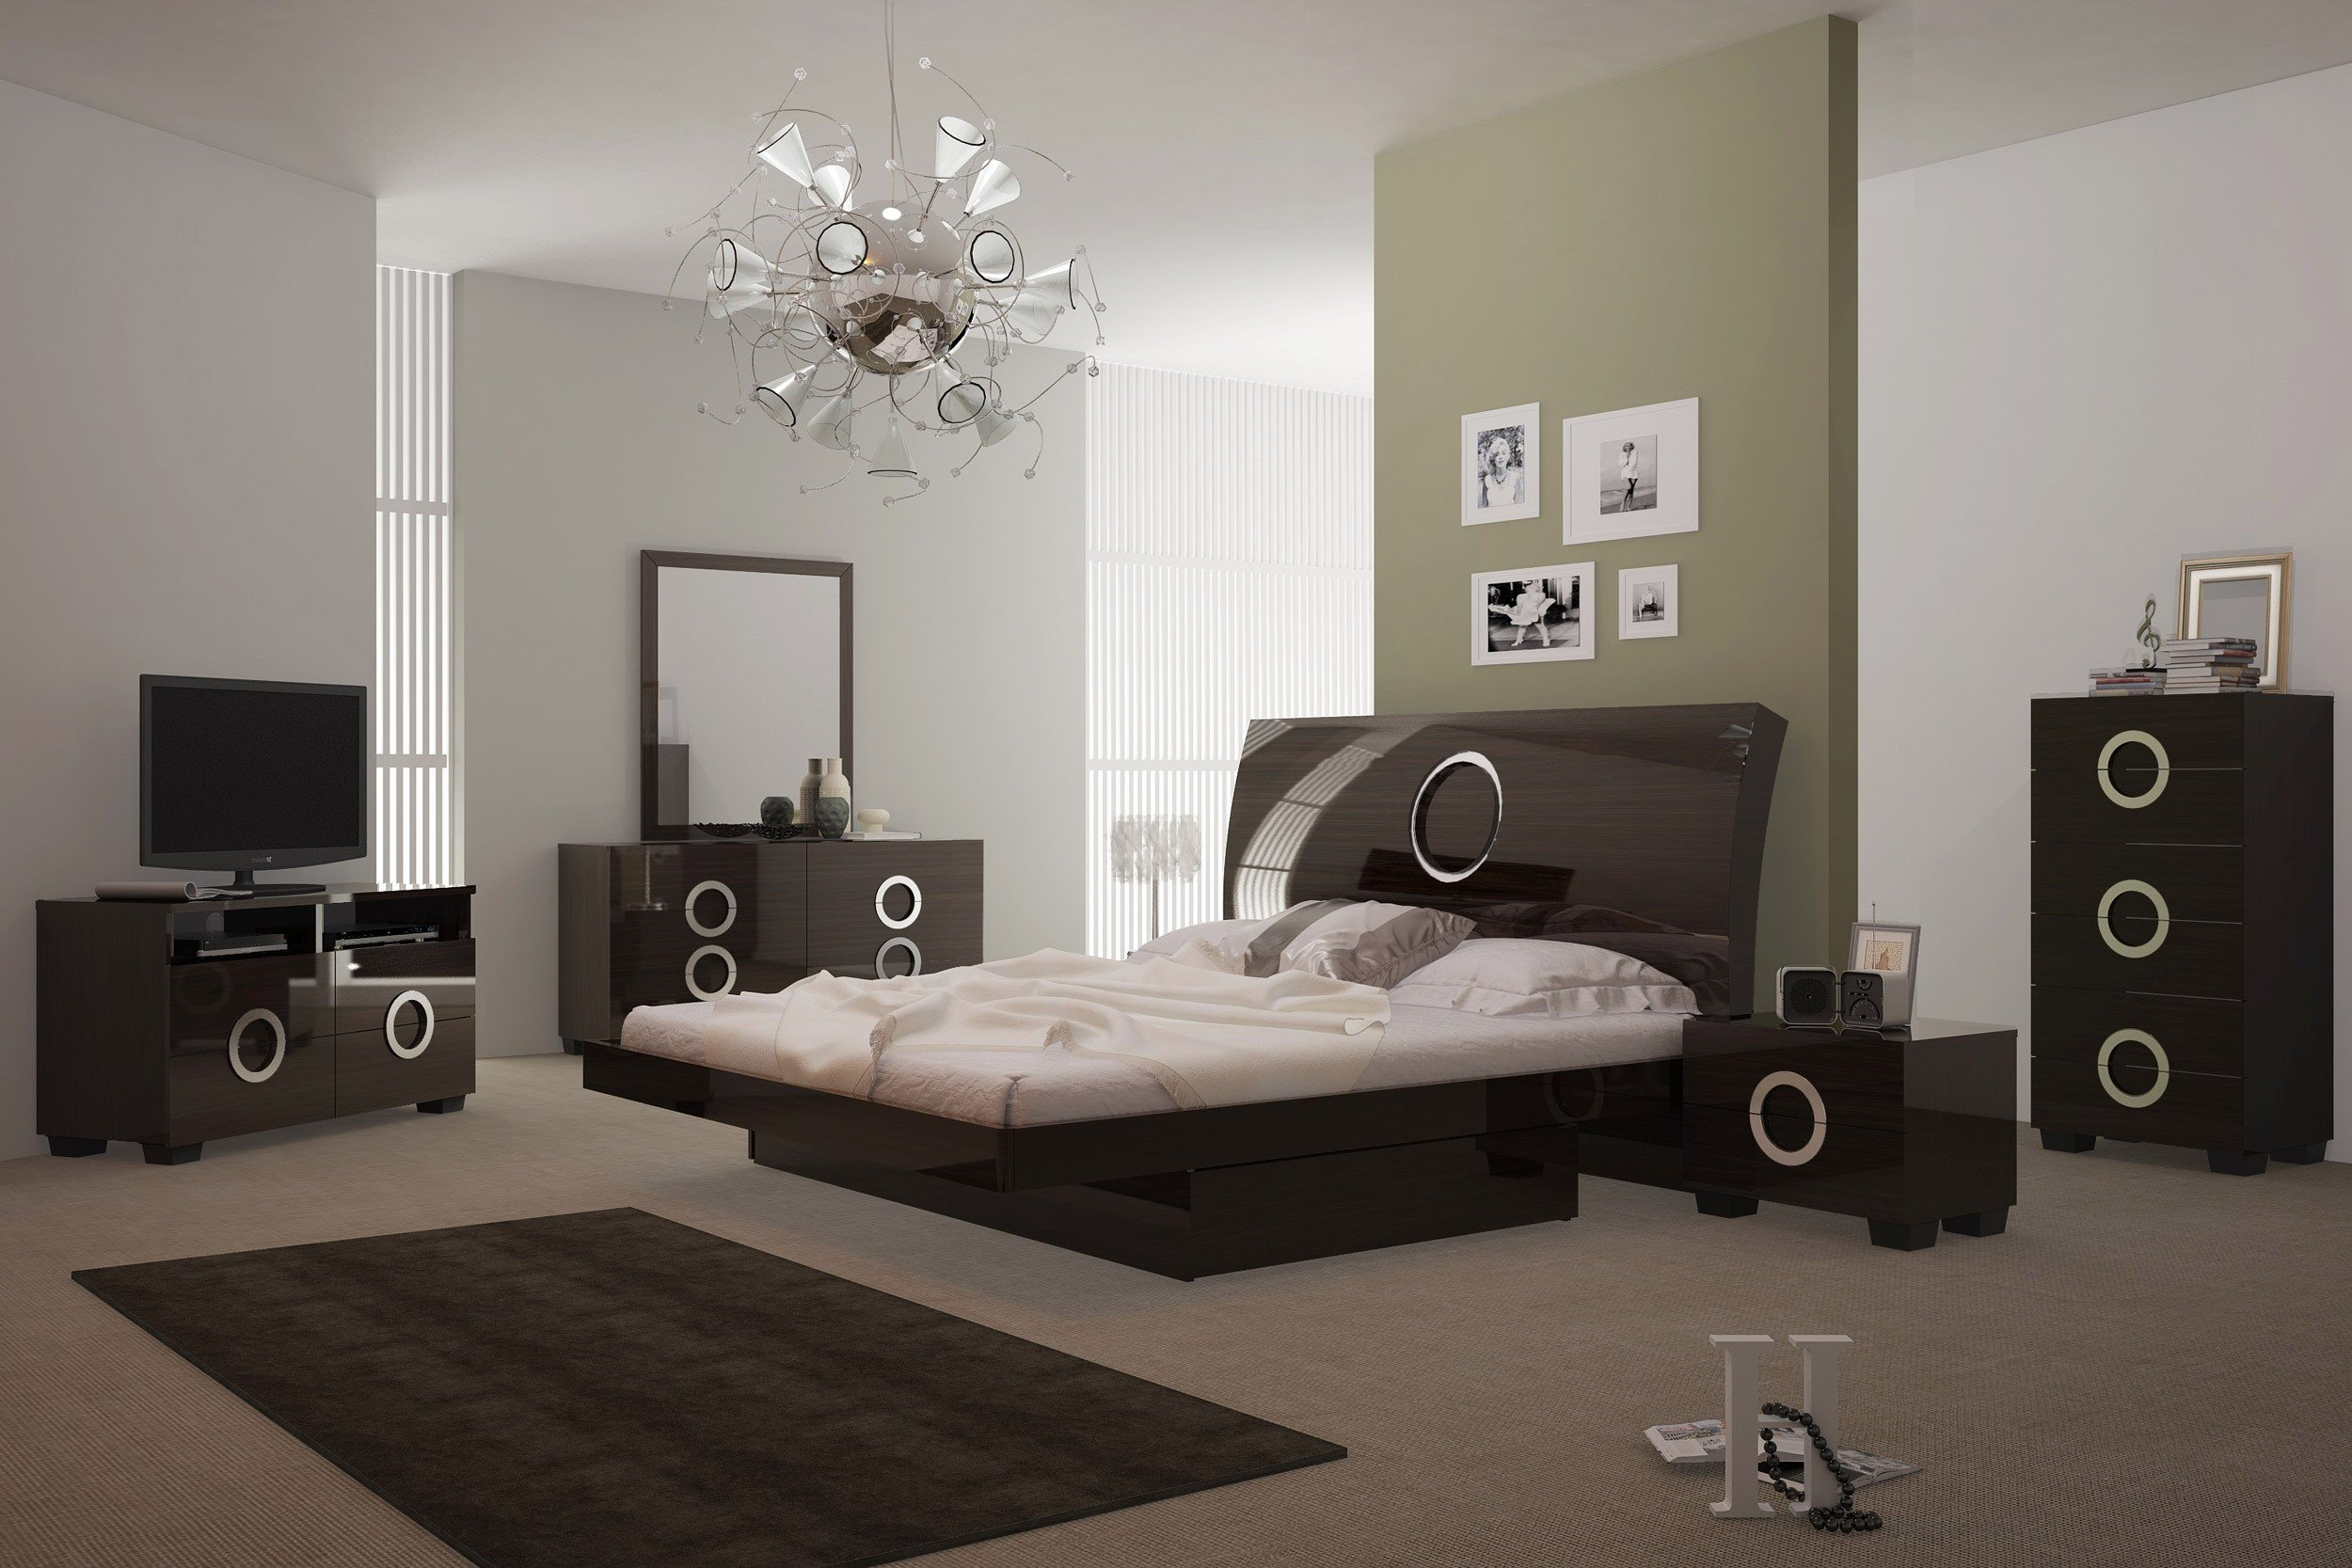 White Lacquer Bedroom Furniture Beautiful Monte Carlo Bedroom Set In Wenge Lacquer Finish